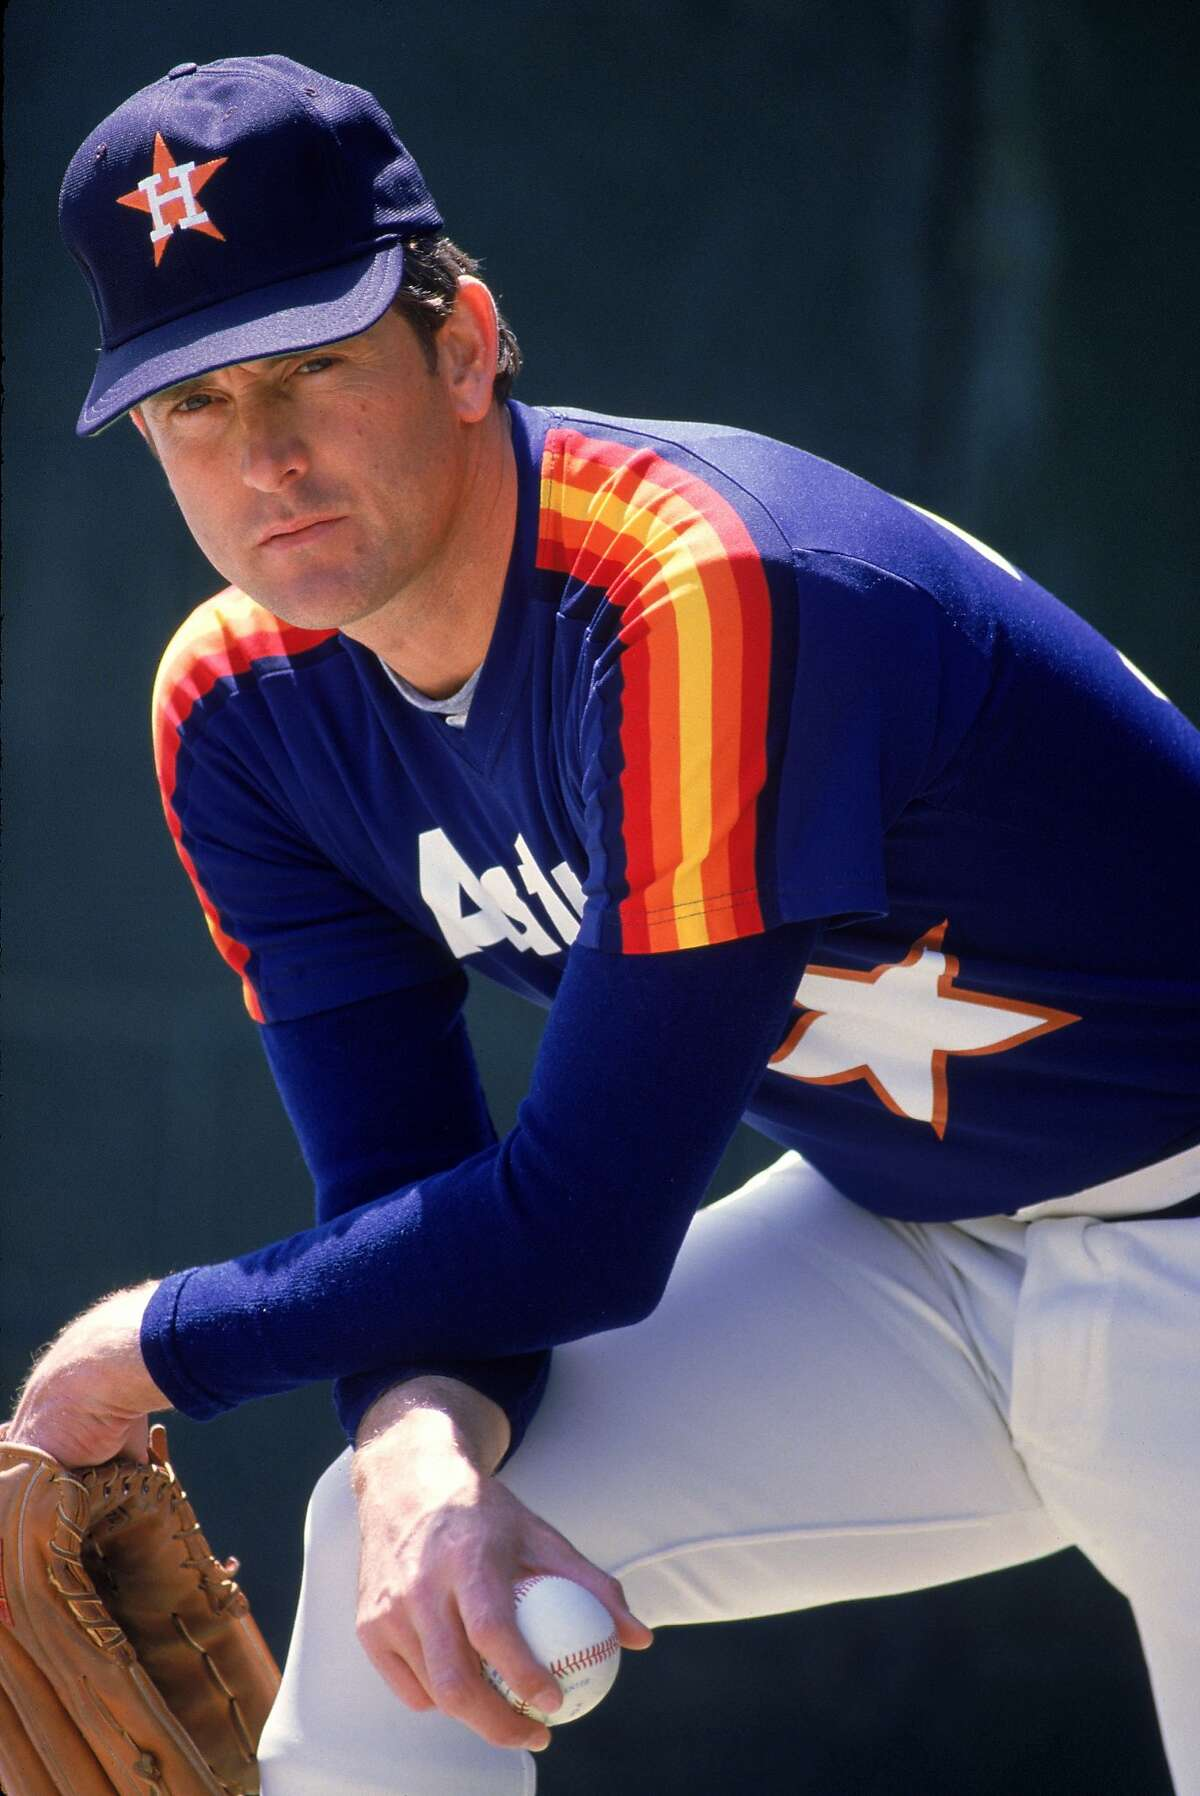 Legendary pitcher Nolan Ryan of the Houston Astros poses for a photo in the 1980s. Ryan is probably still mad about the walk-off home run he gave up to Bruce Bochy.